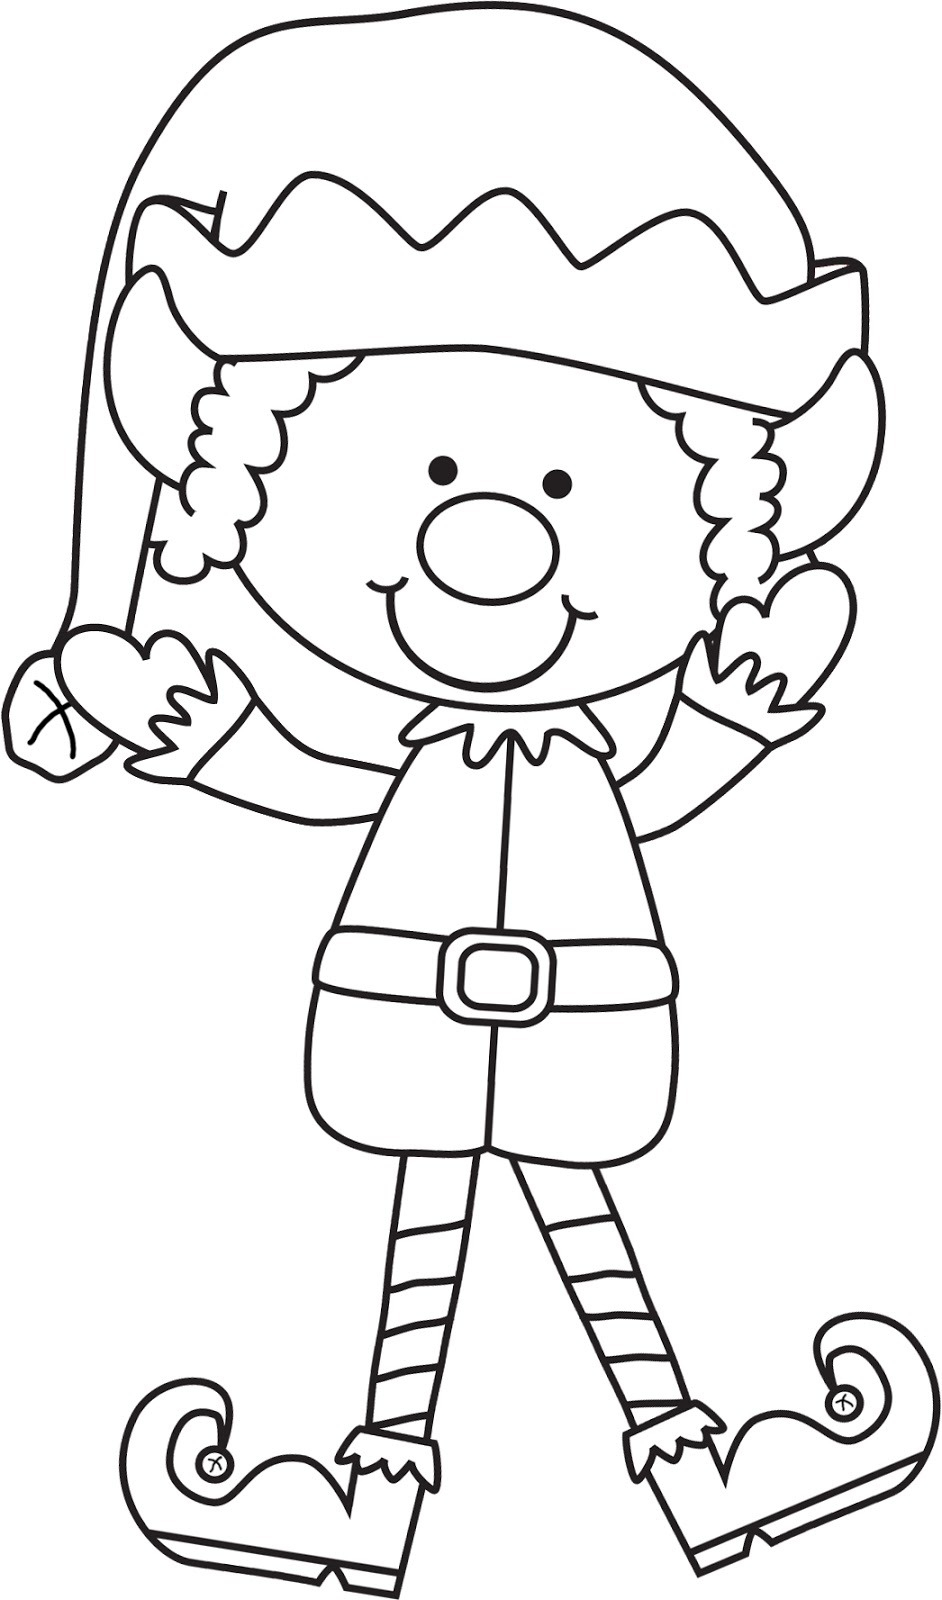 Black And White Elf Clipart.